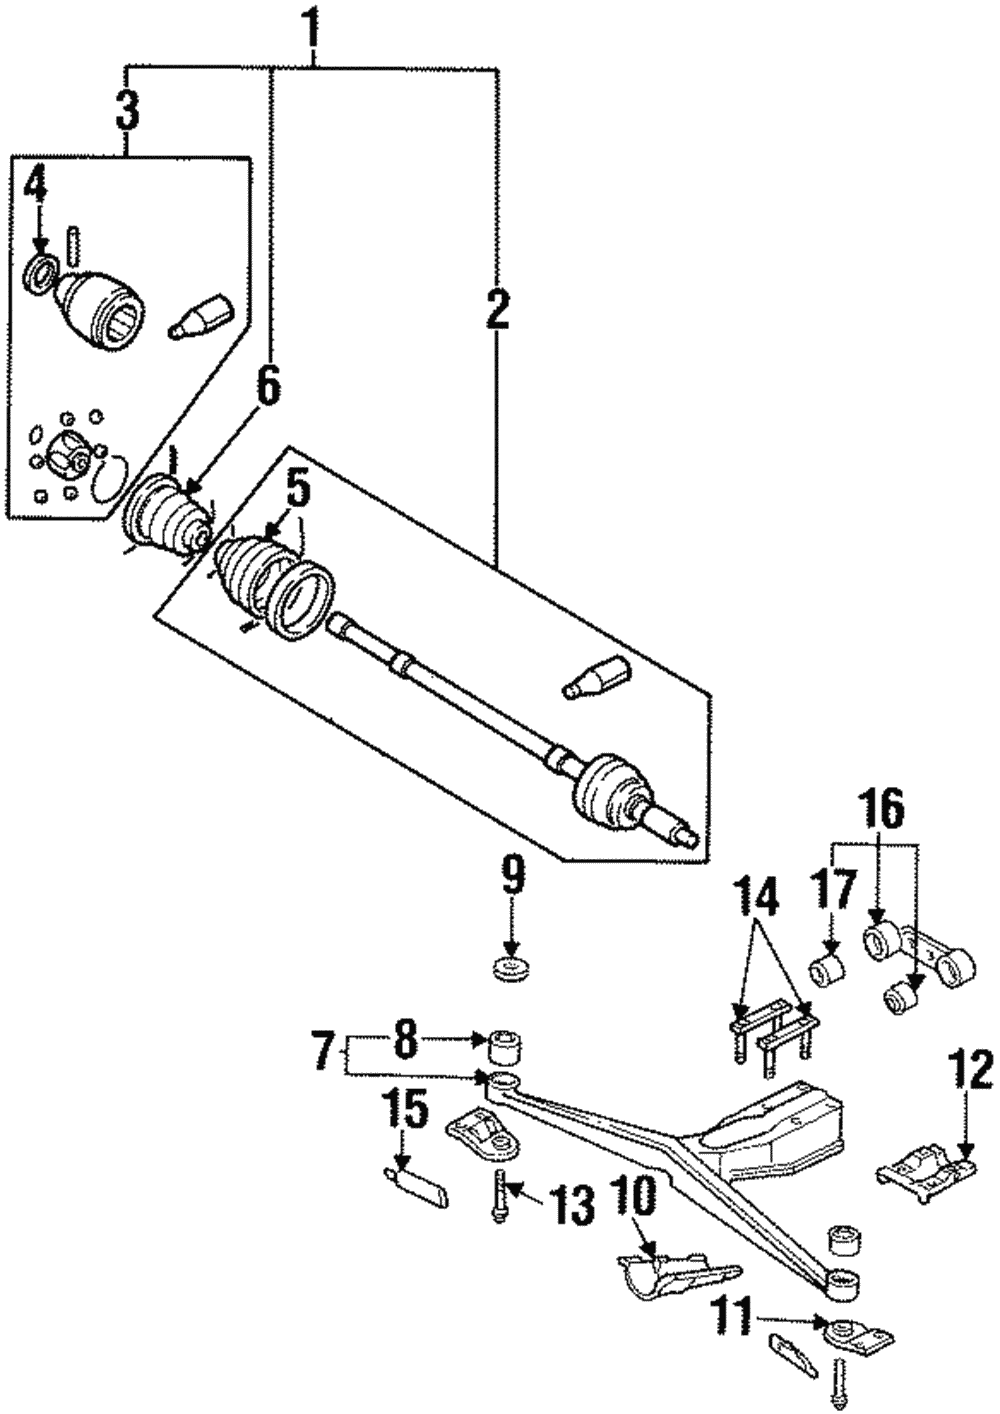 hight resolution of part can be found as 1 in the diagram above genuine subaru parts